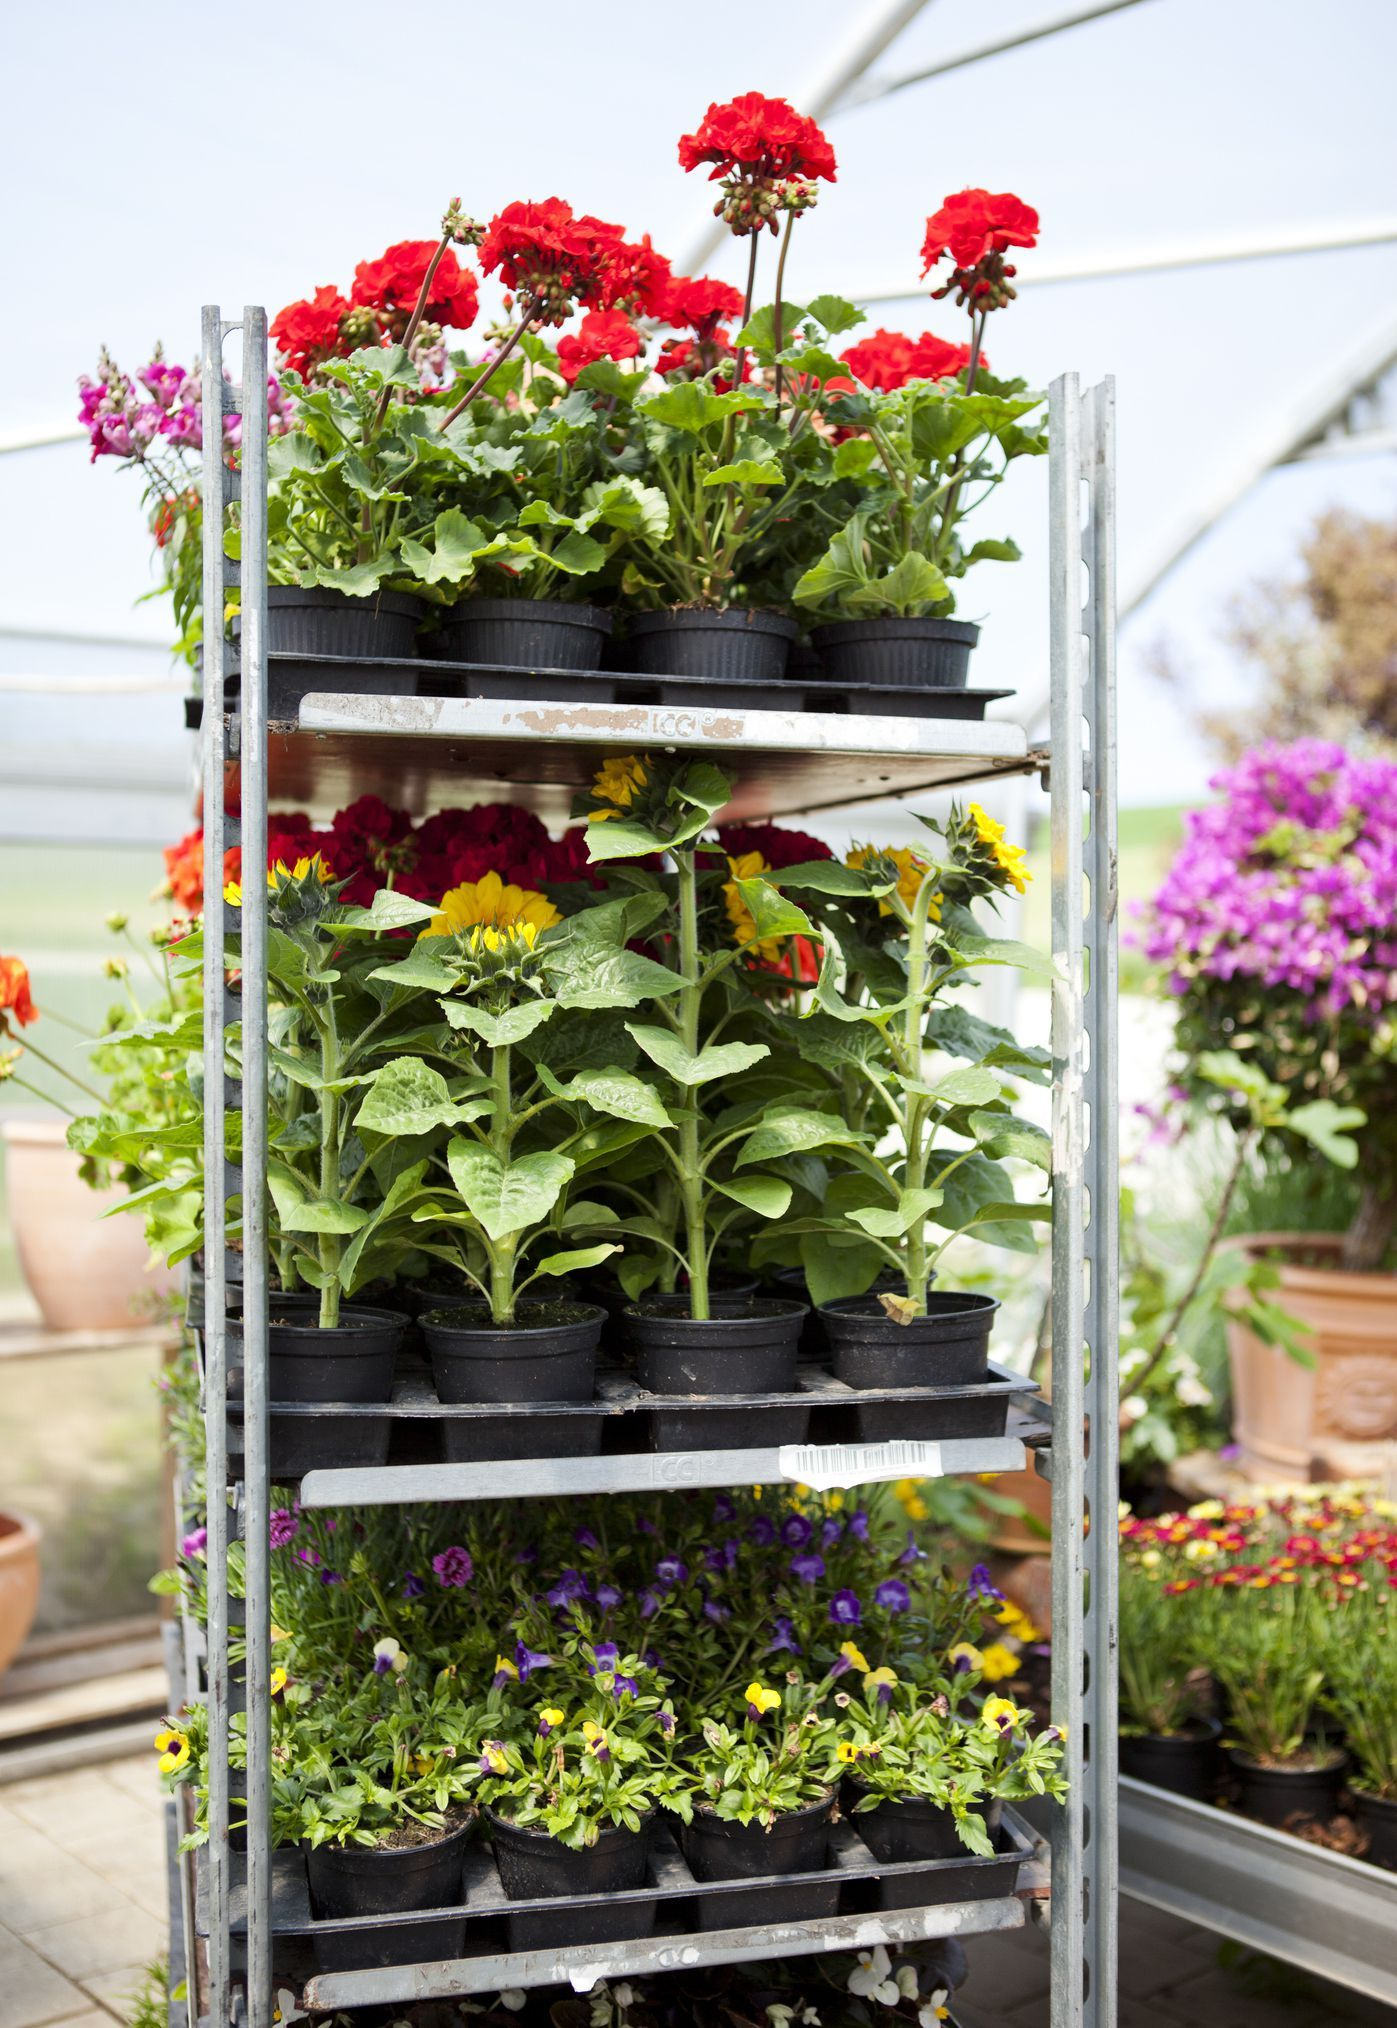 Shopping for plants? Here's how to buy more for less